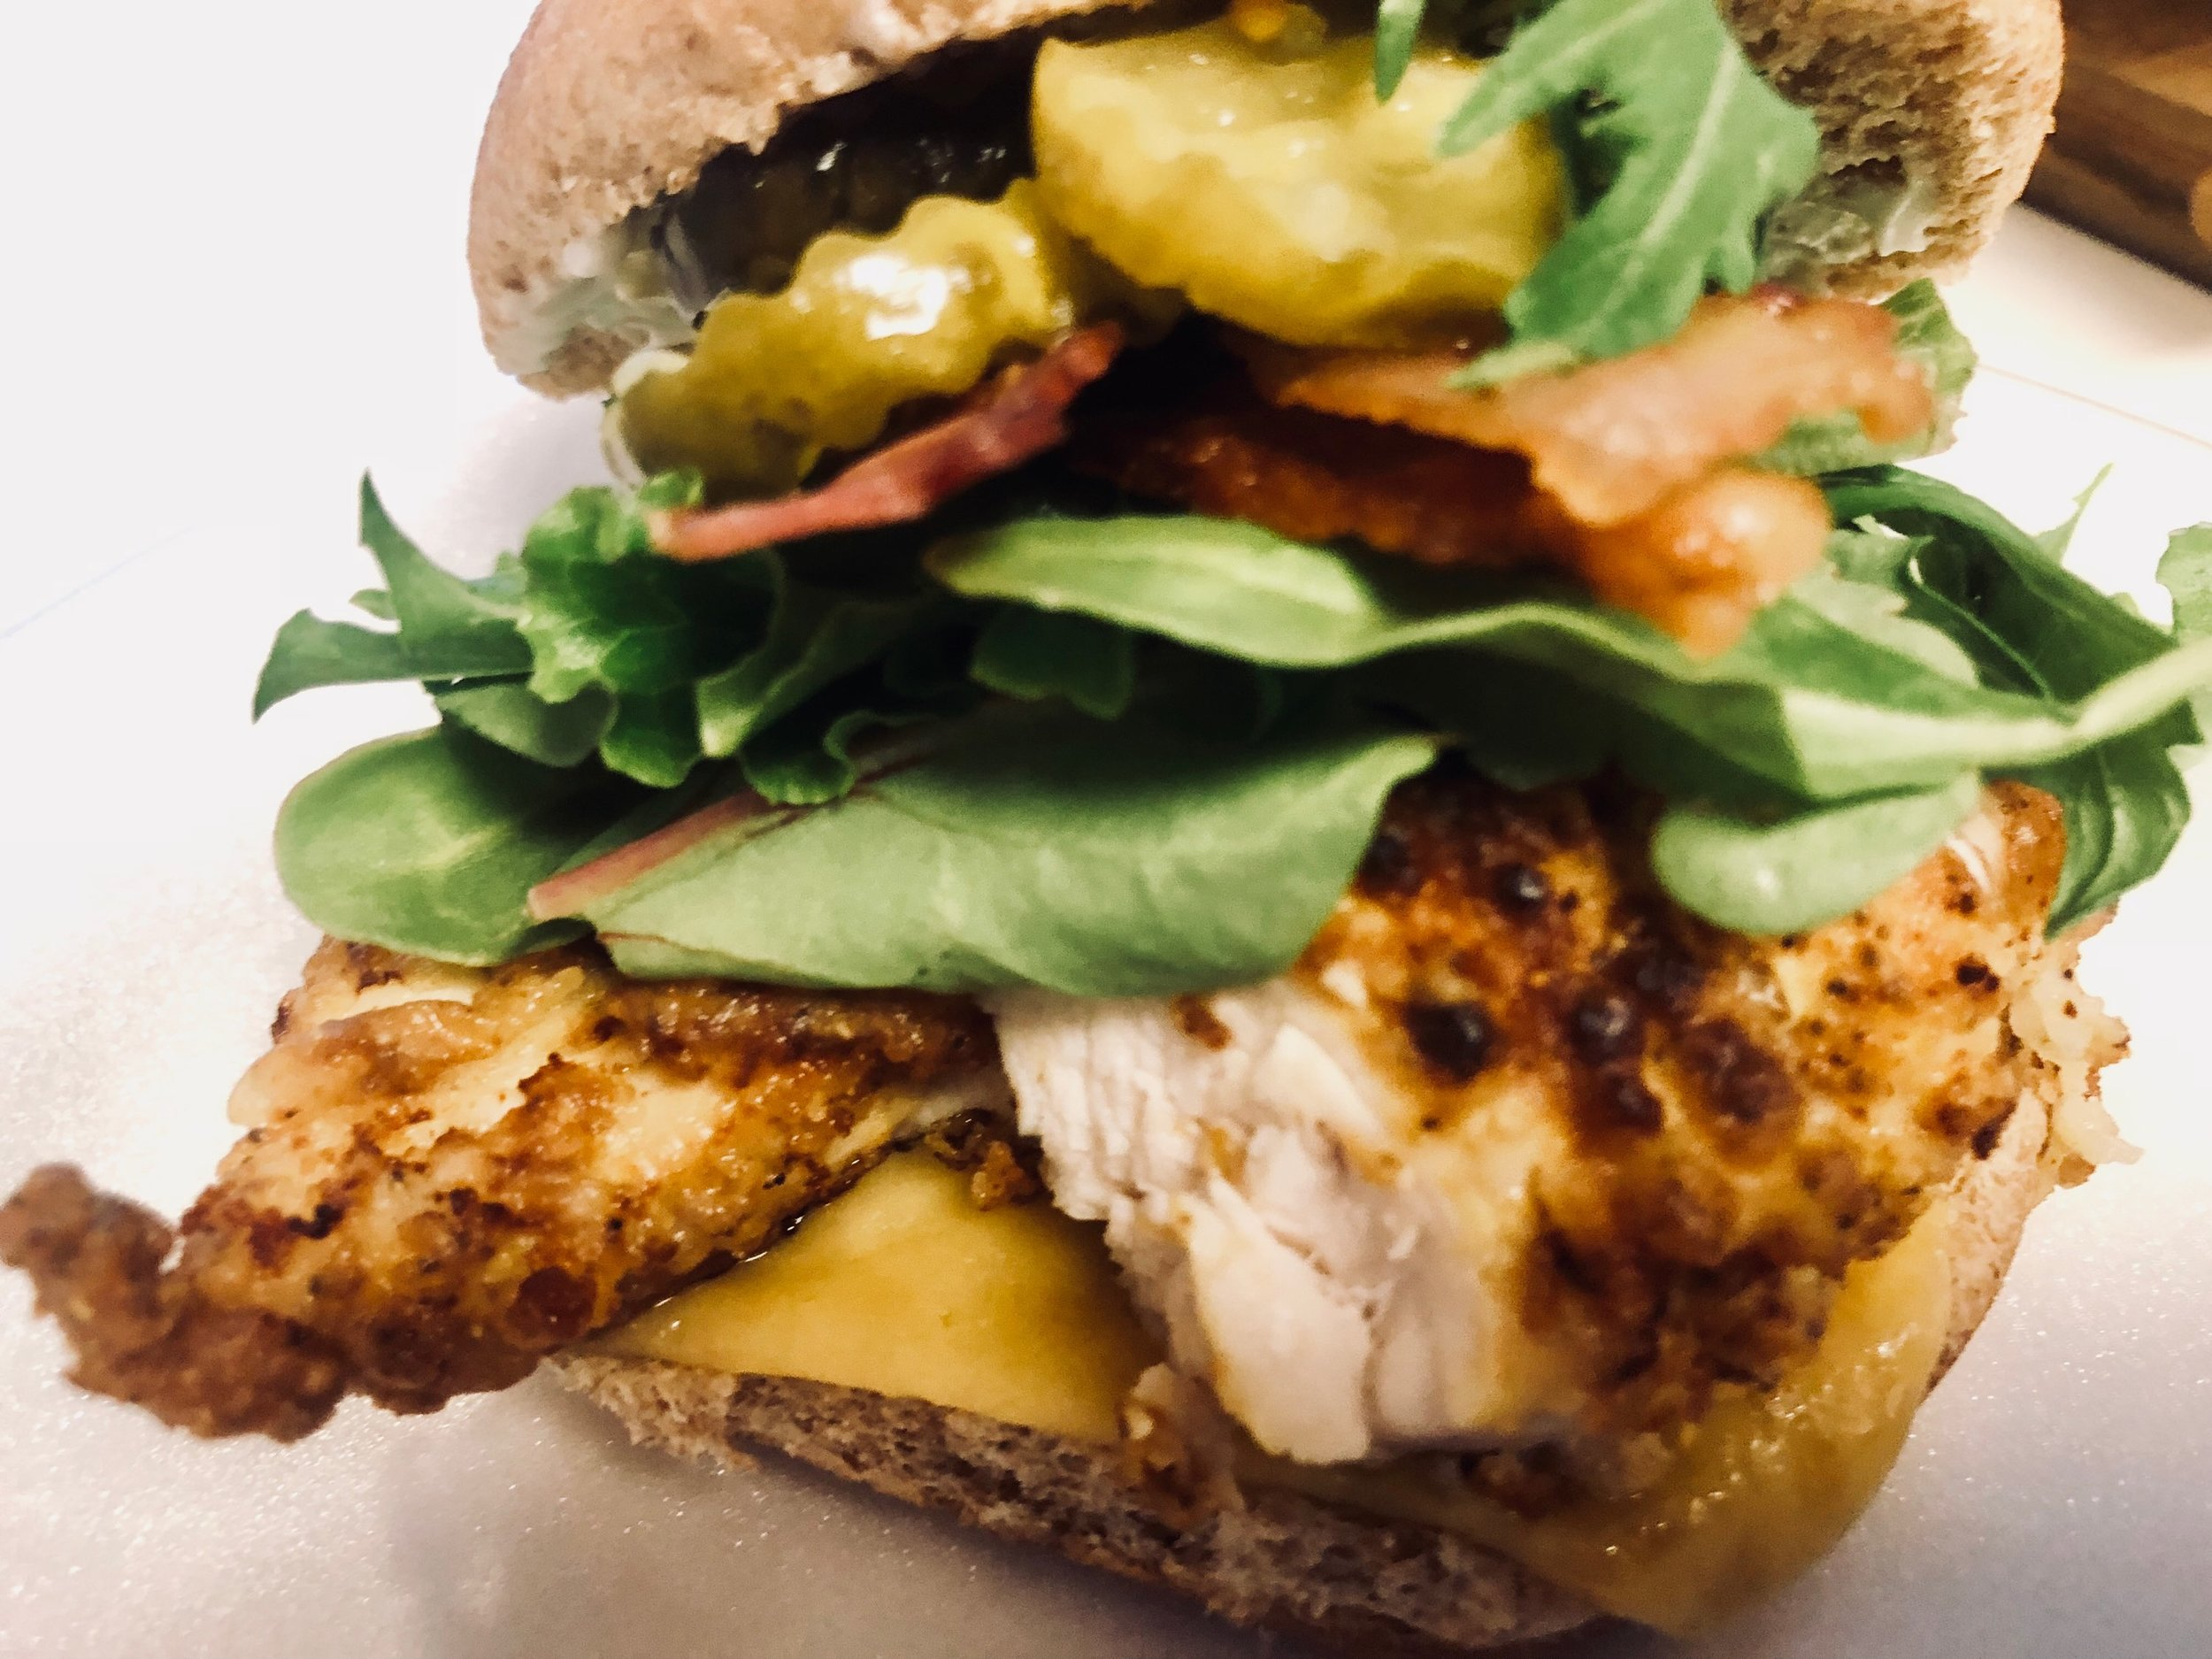 Fried chicken breast seasoned with Chef Monica's NC Red Spice, topped with arugula lettuce, thick cut apple bacon, tangy sweet pickles with an aioli spread, American Cheese on a fresh wheat bread bun.